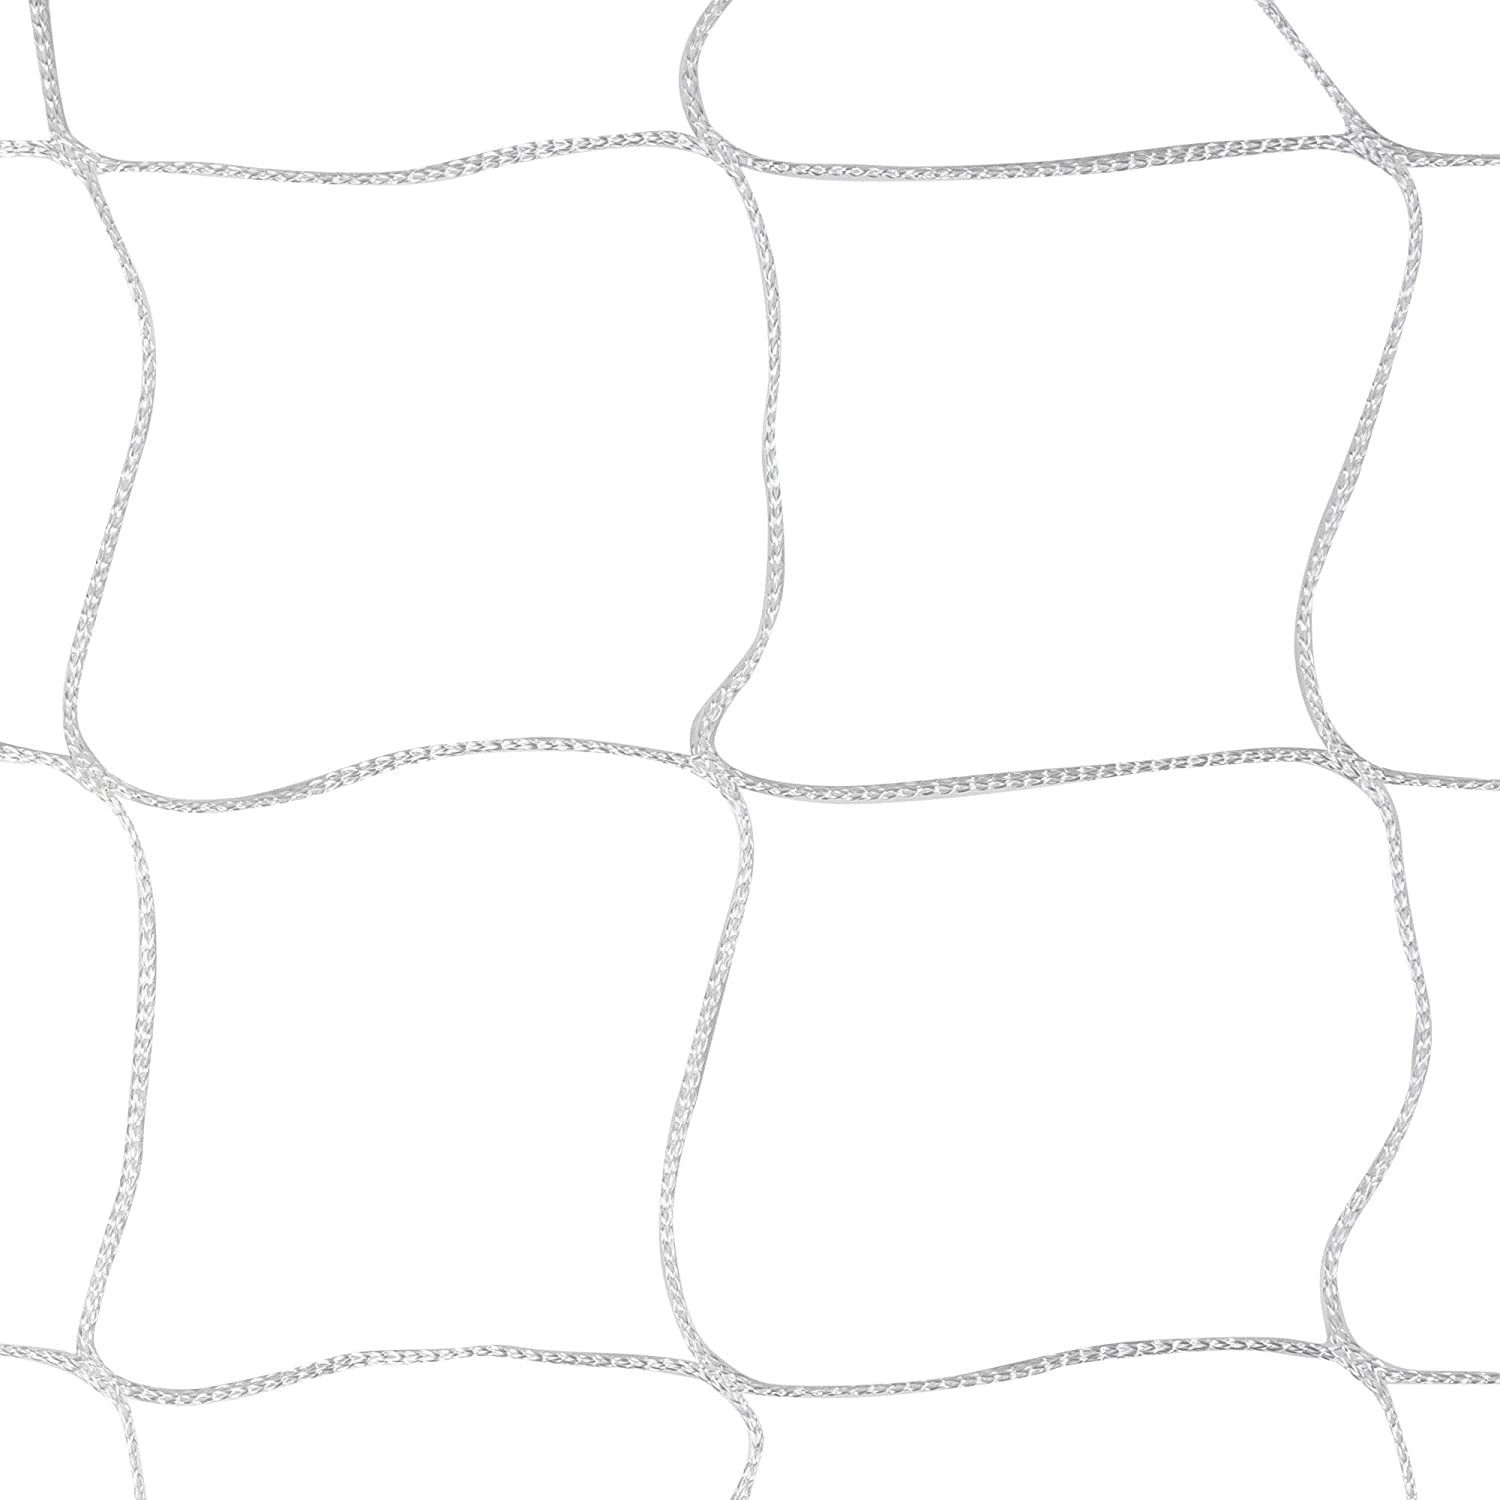 Support for Flowers Trellis Netting for Garden 3.5 Inch Mesh Tomato Plants and More 5 H x 30 W Happy Hydro Vines